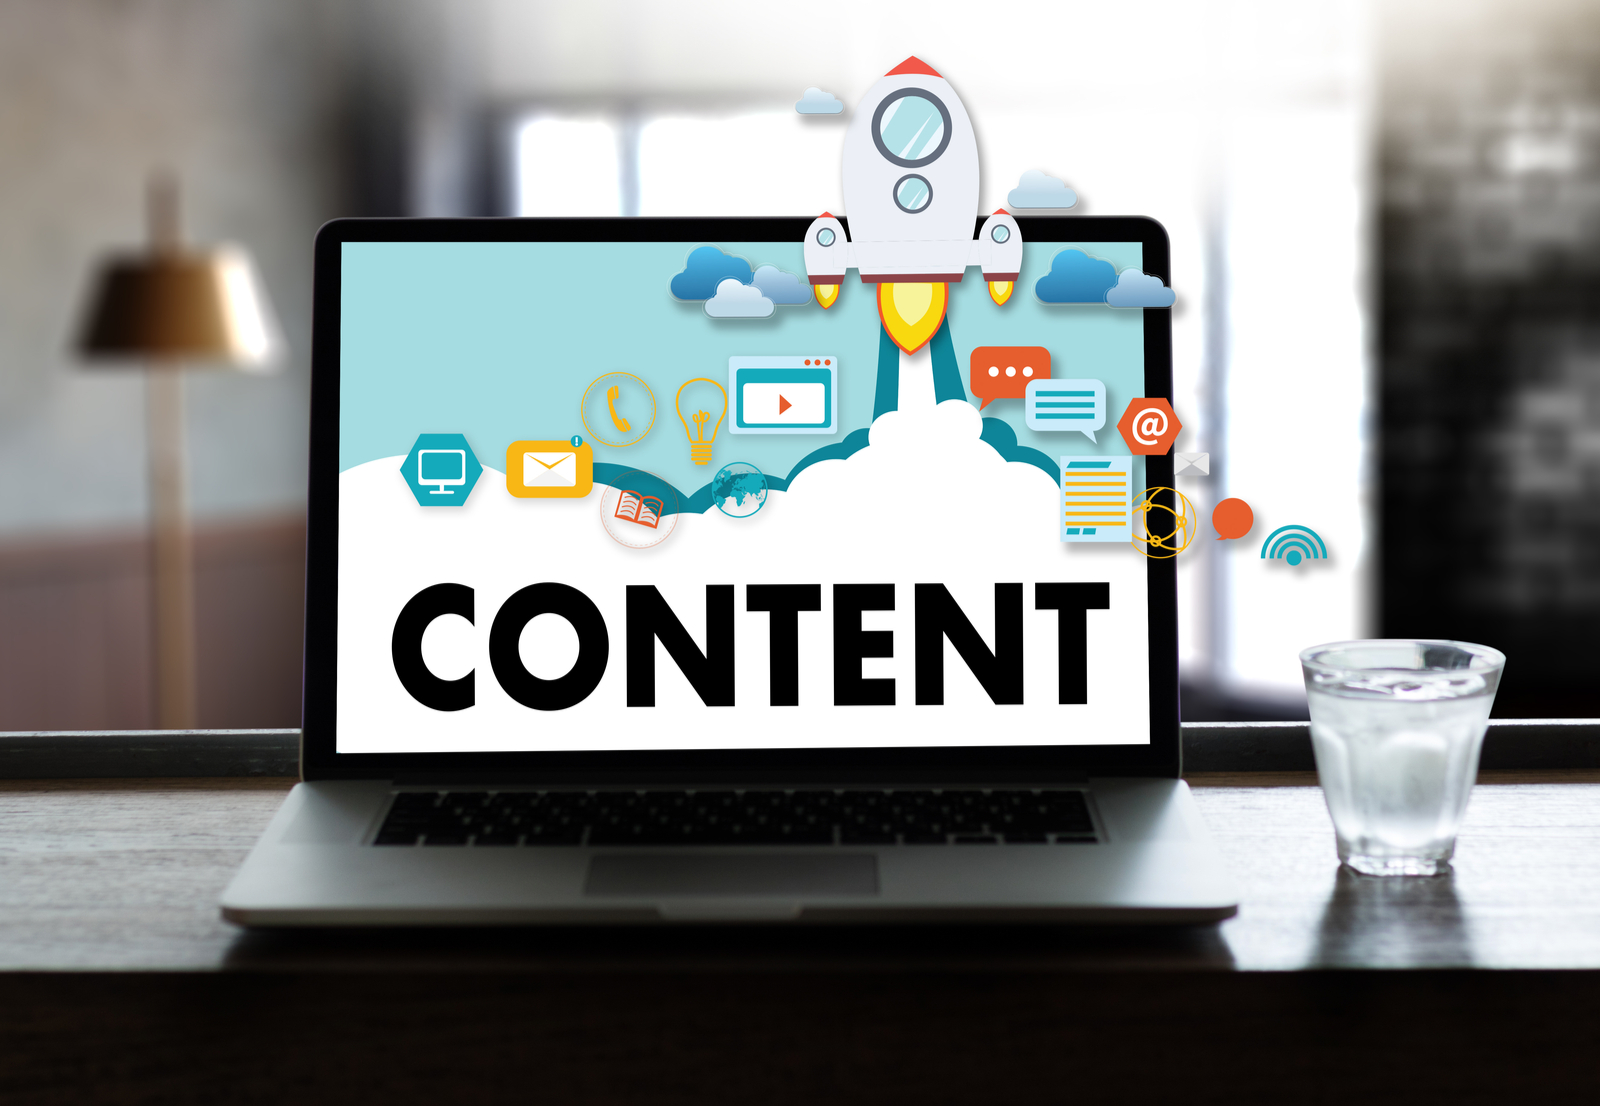 Content | Search Engine Marketing: Creating A Strategy To Hit Your Goals